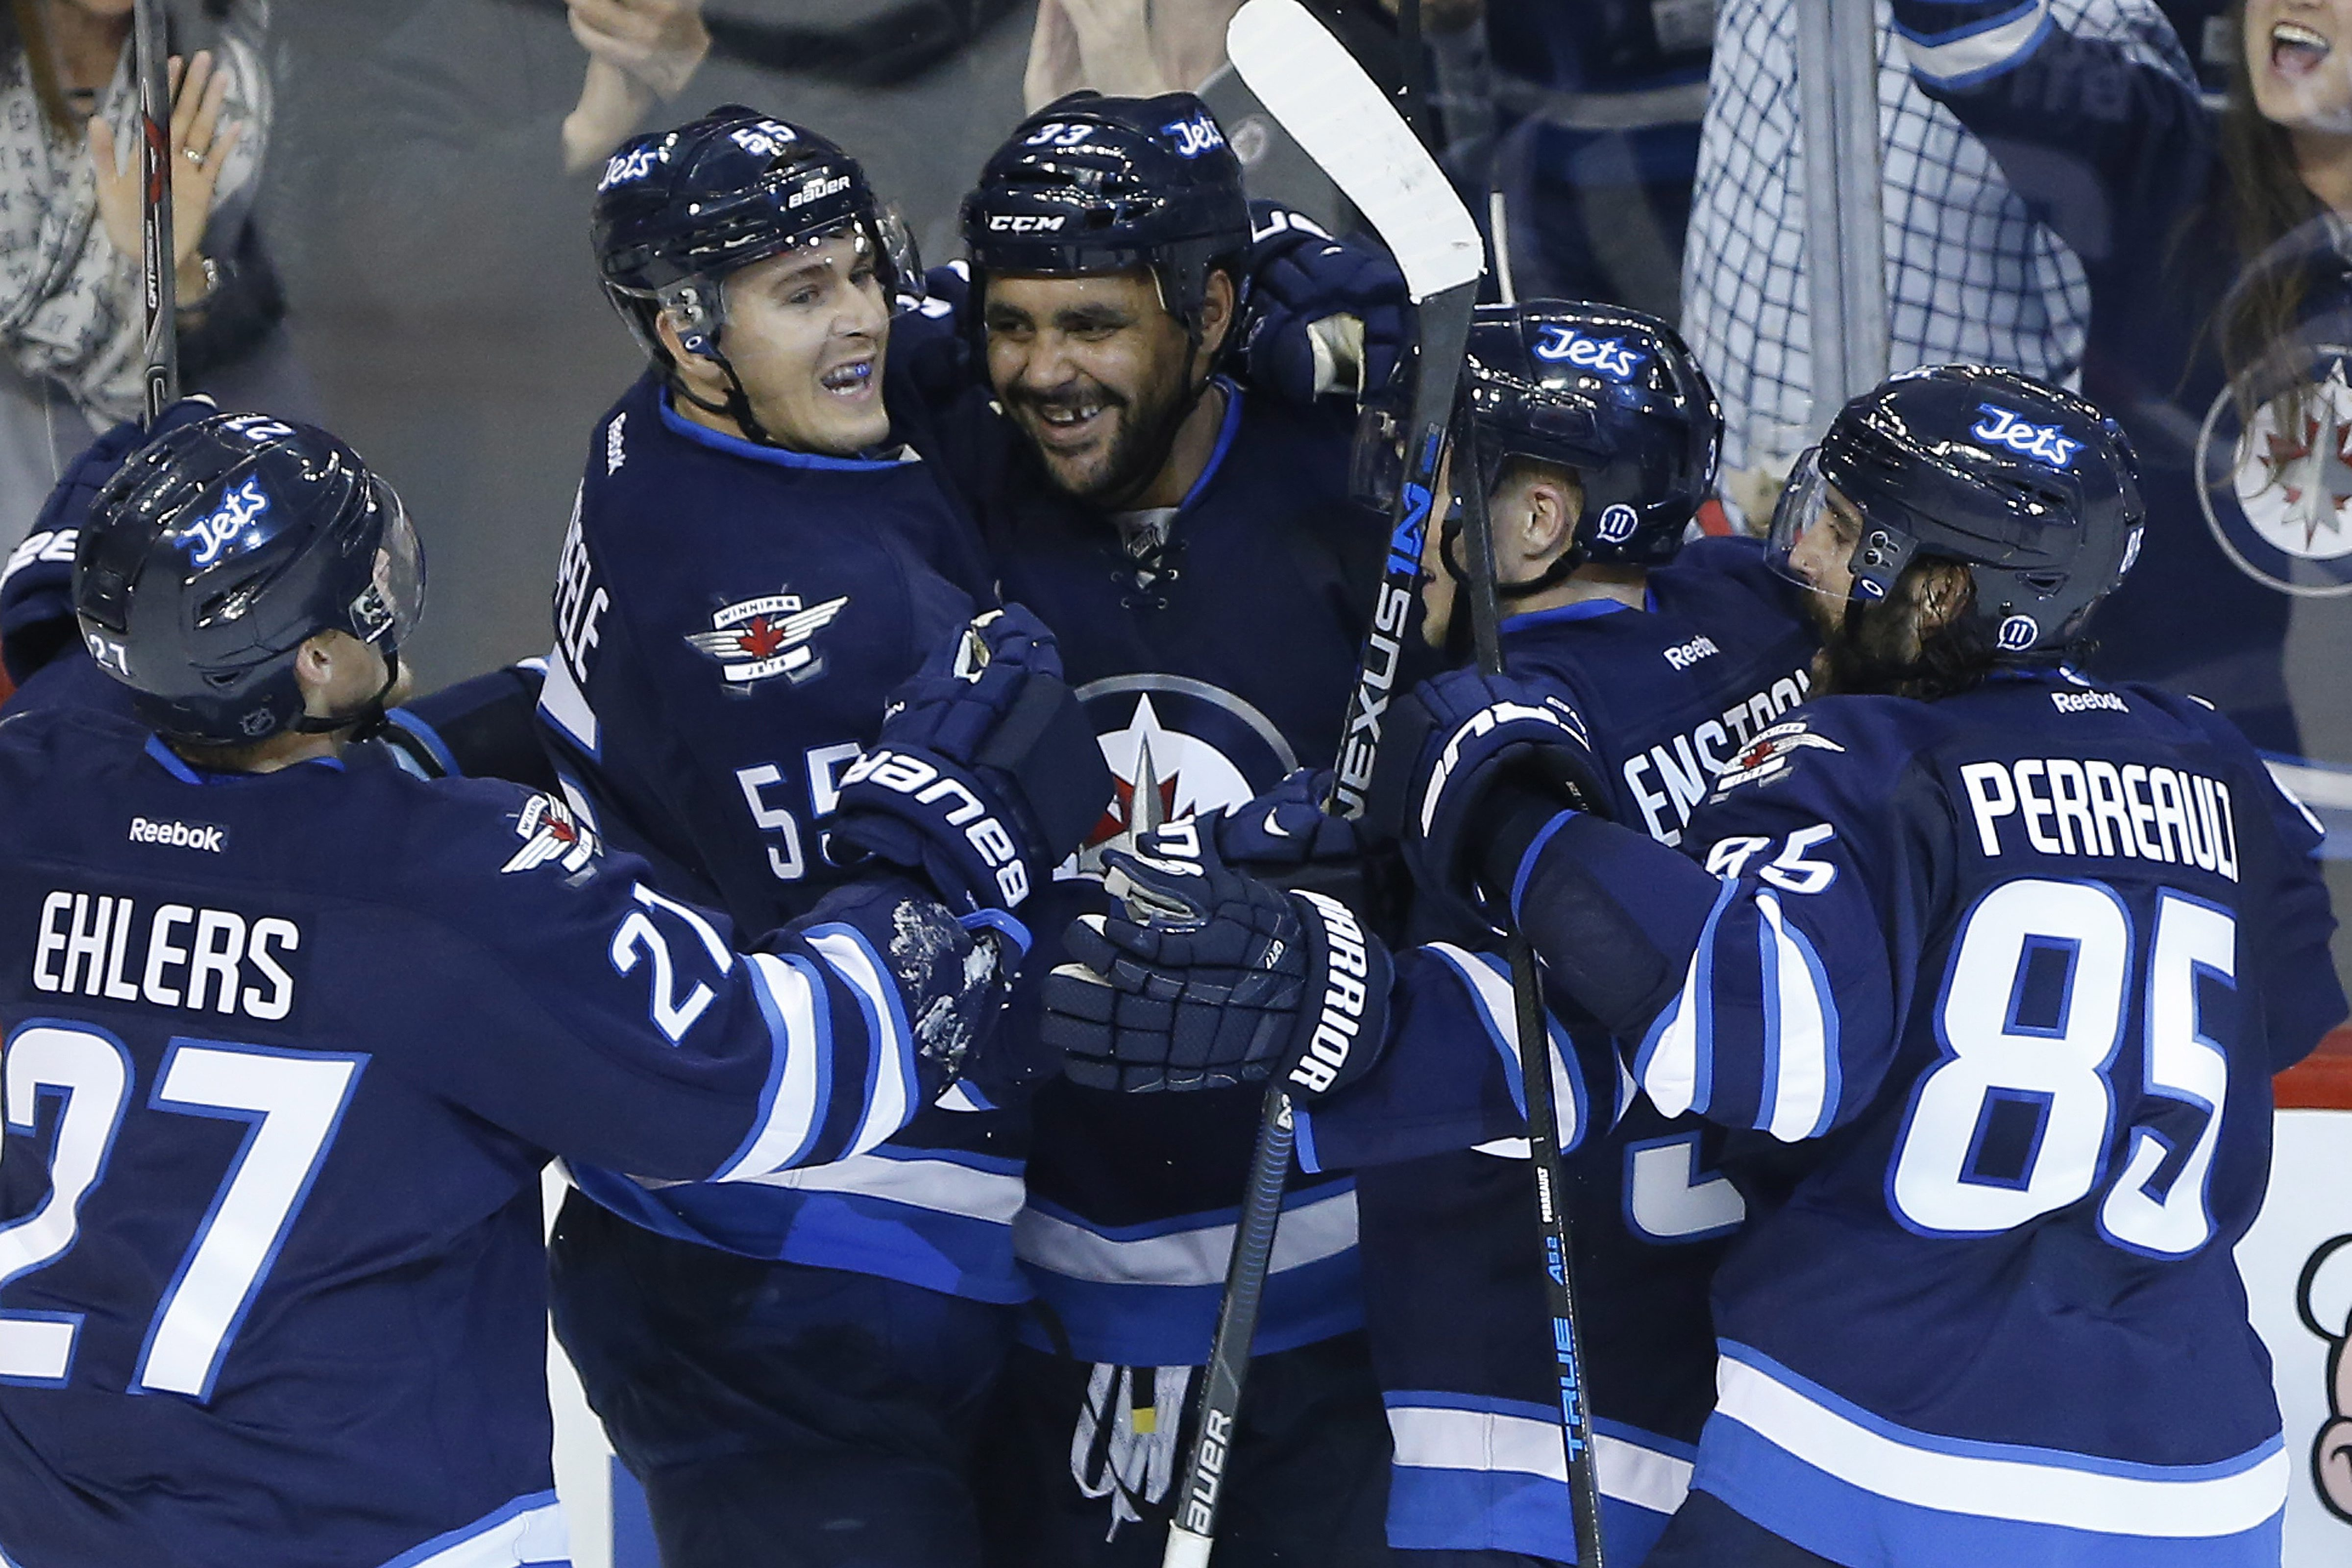 Winnipeg Jets' Nikolaj Ehlers (27), left to right, Mark Scheifele (55), Dustin Byfuglien (33), Toby Enstrom (39) and Mathieu Perreault (85) celebrate Byfuglien's goal against the Calgary Flames during the third period of an NHL hockey game, Friday Oct. 16